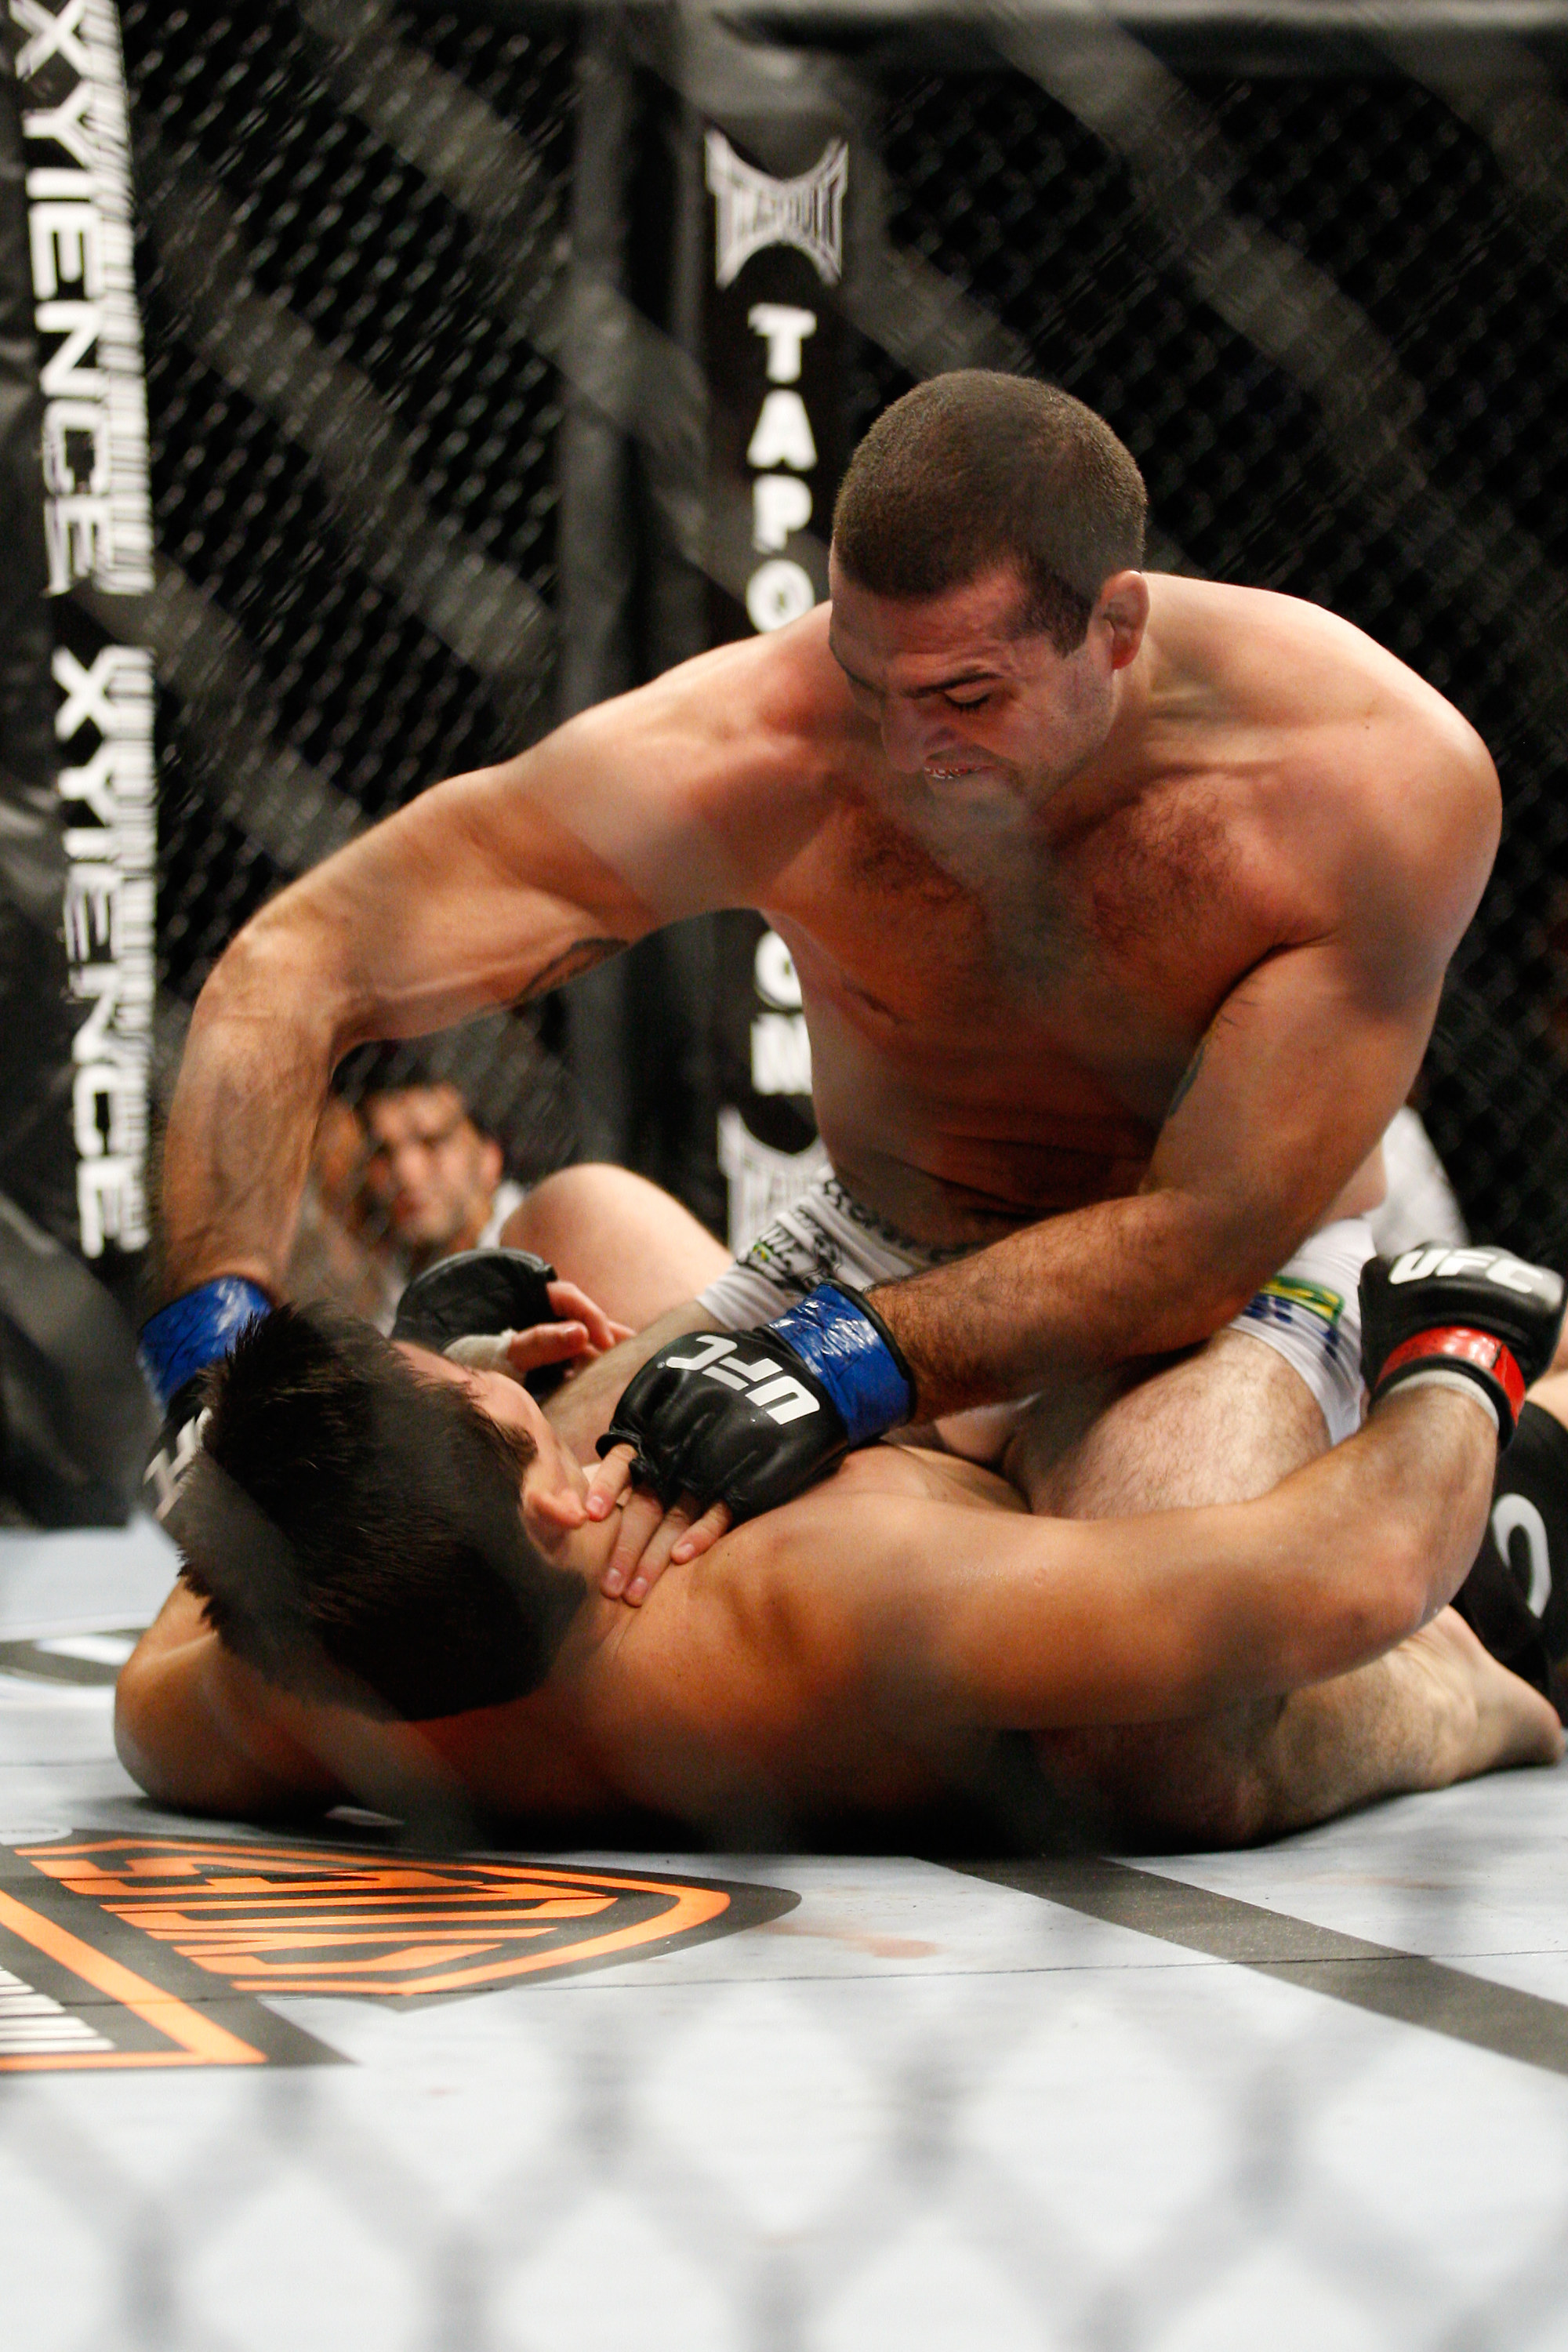 MONTREAL- MAY 8: Mauricio 'Shogun' Rua (top) punches Lyoto Machida in their light heavyweight bout at UFC 113 at Bell Centre on May 8, 2010 in Montreal, Quebec, Canada.  (Photo by Richard Wolowicz/Getty Images)